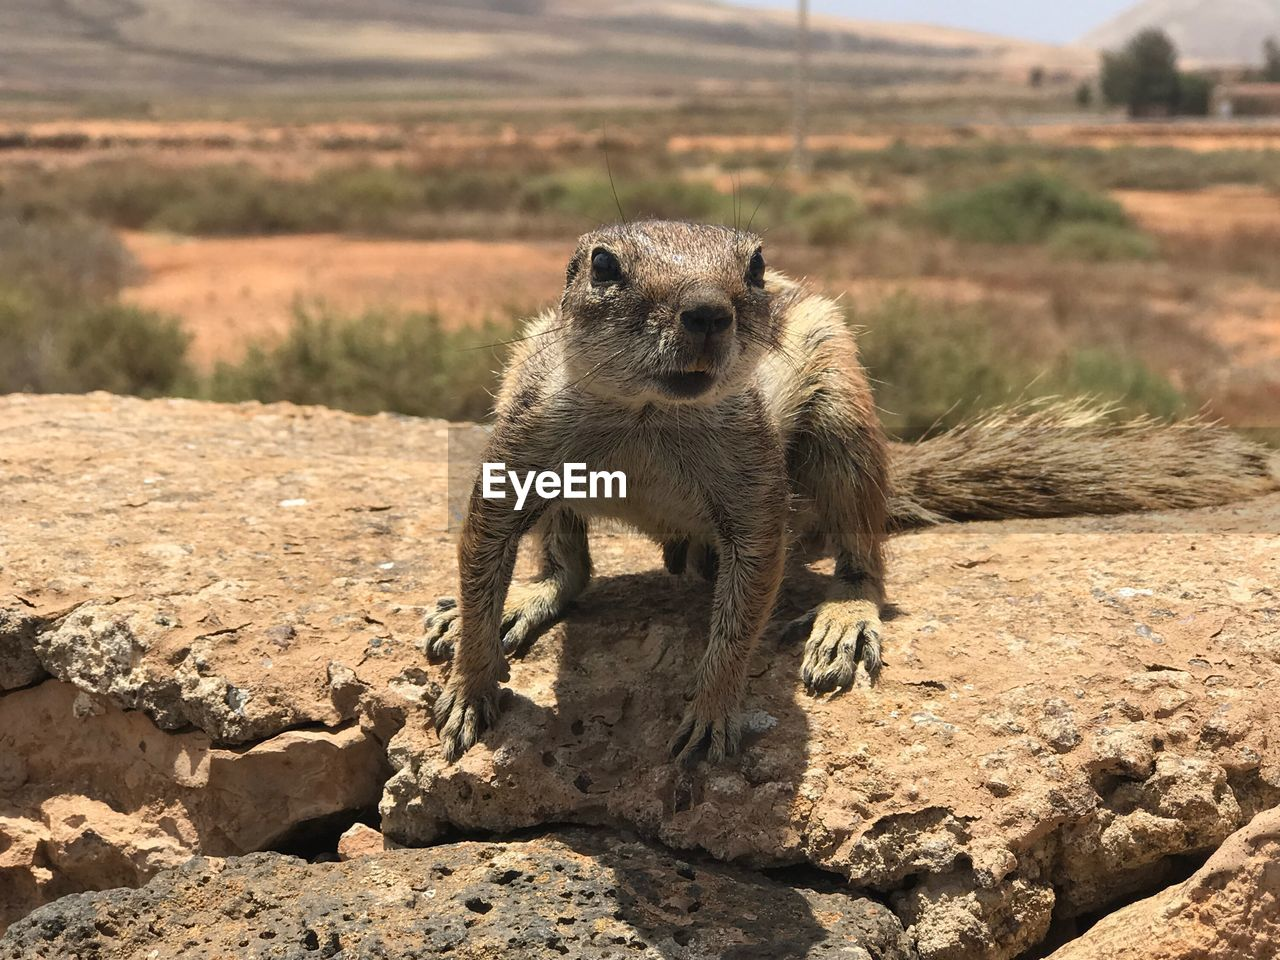 animals in the wild, animal themes, animal, sunlight, animal wildlife, nature, one animal, focus on foreground, rock, day, solid, rock - object, mammal, meerkat, looking at camera, no people, portrait, land, field, vertebrate, outdoors